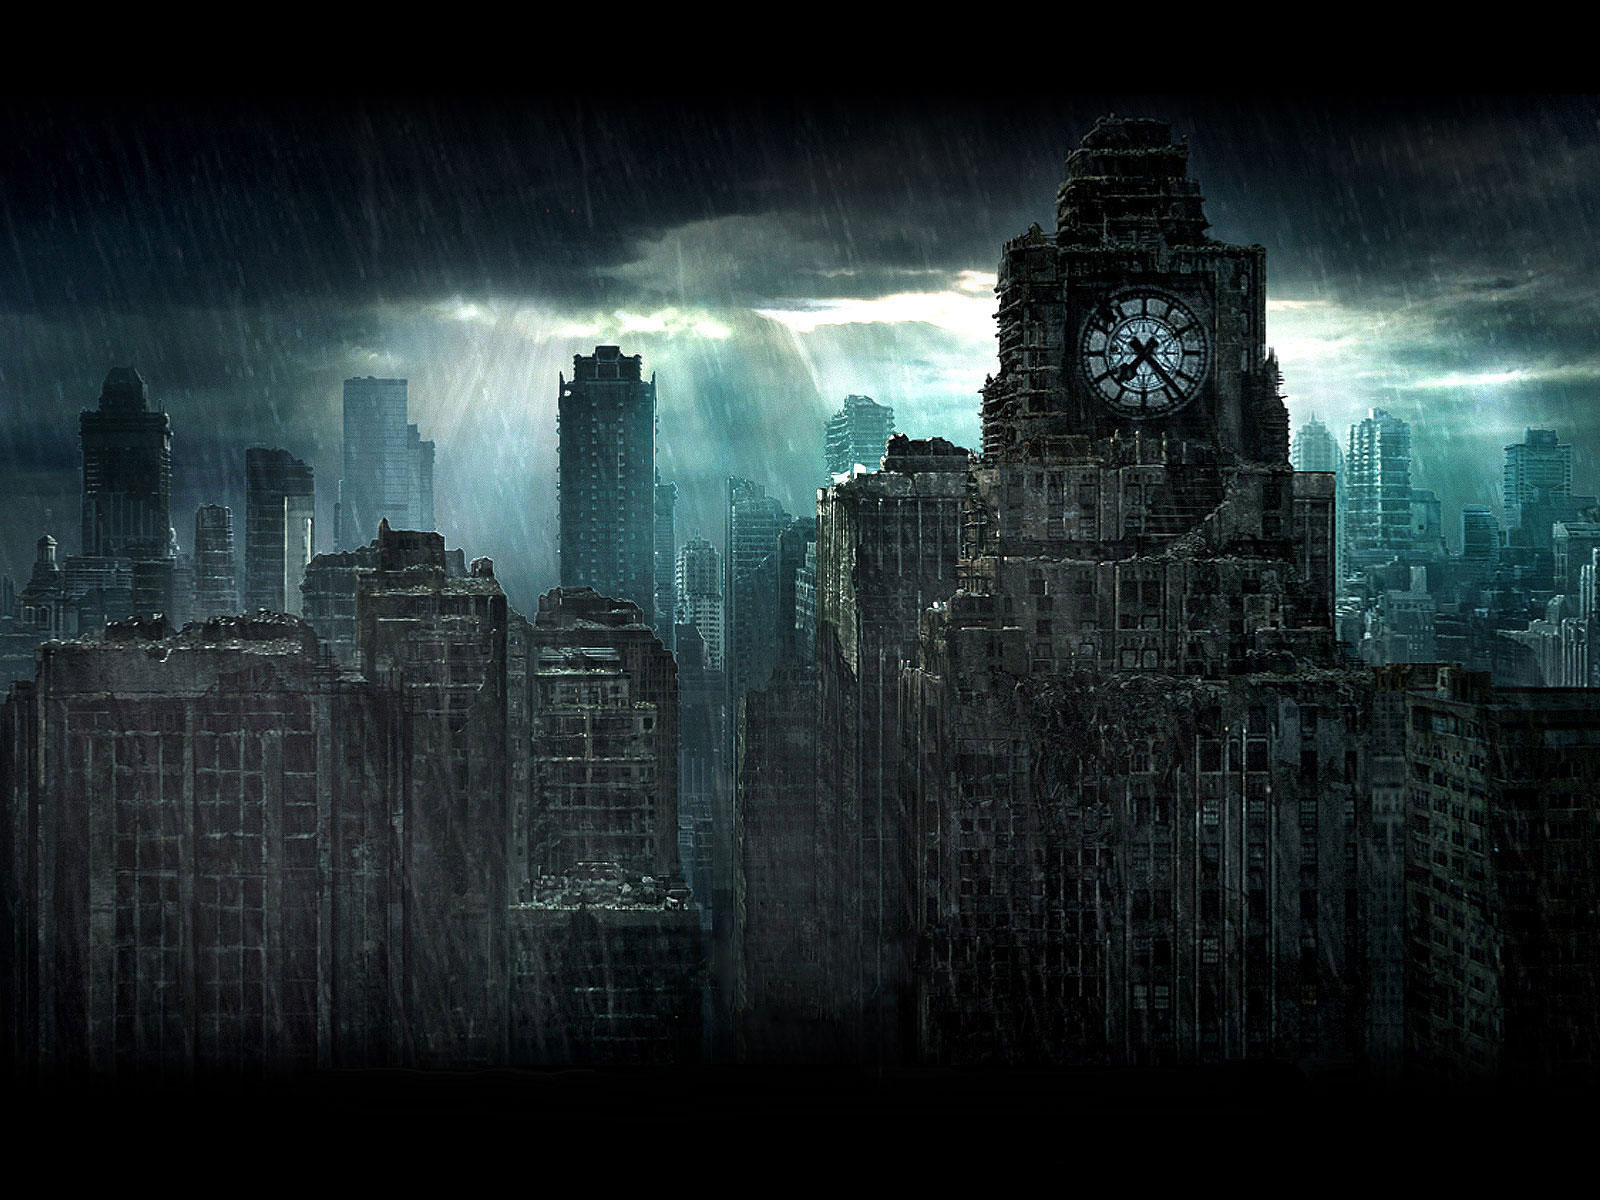 apocalyptic city wallpaper - photo #19